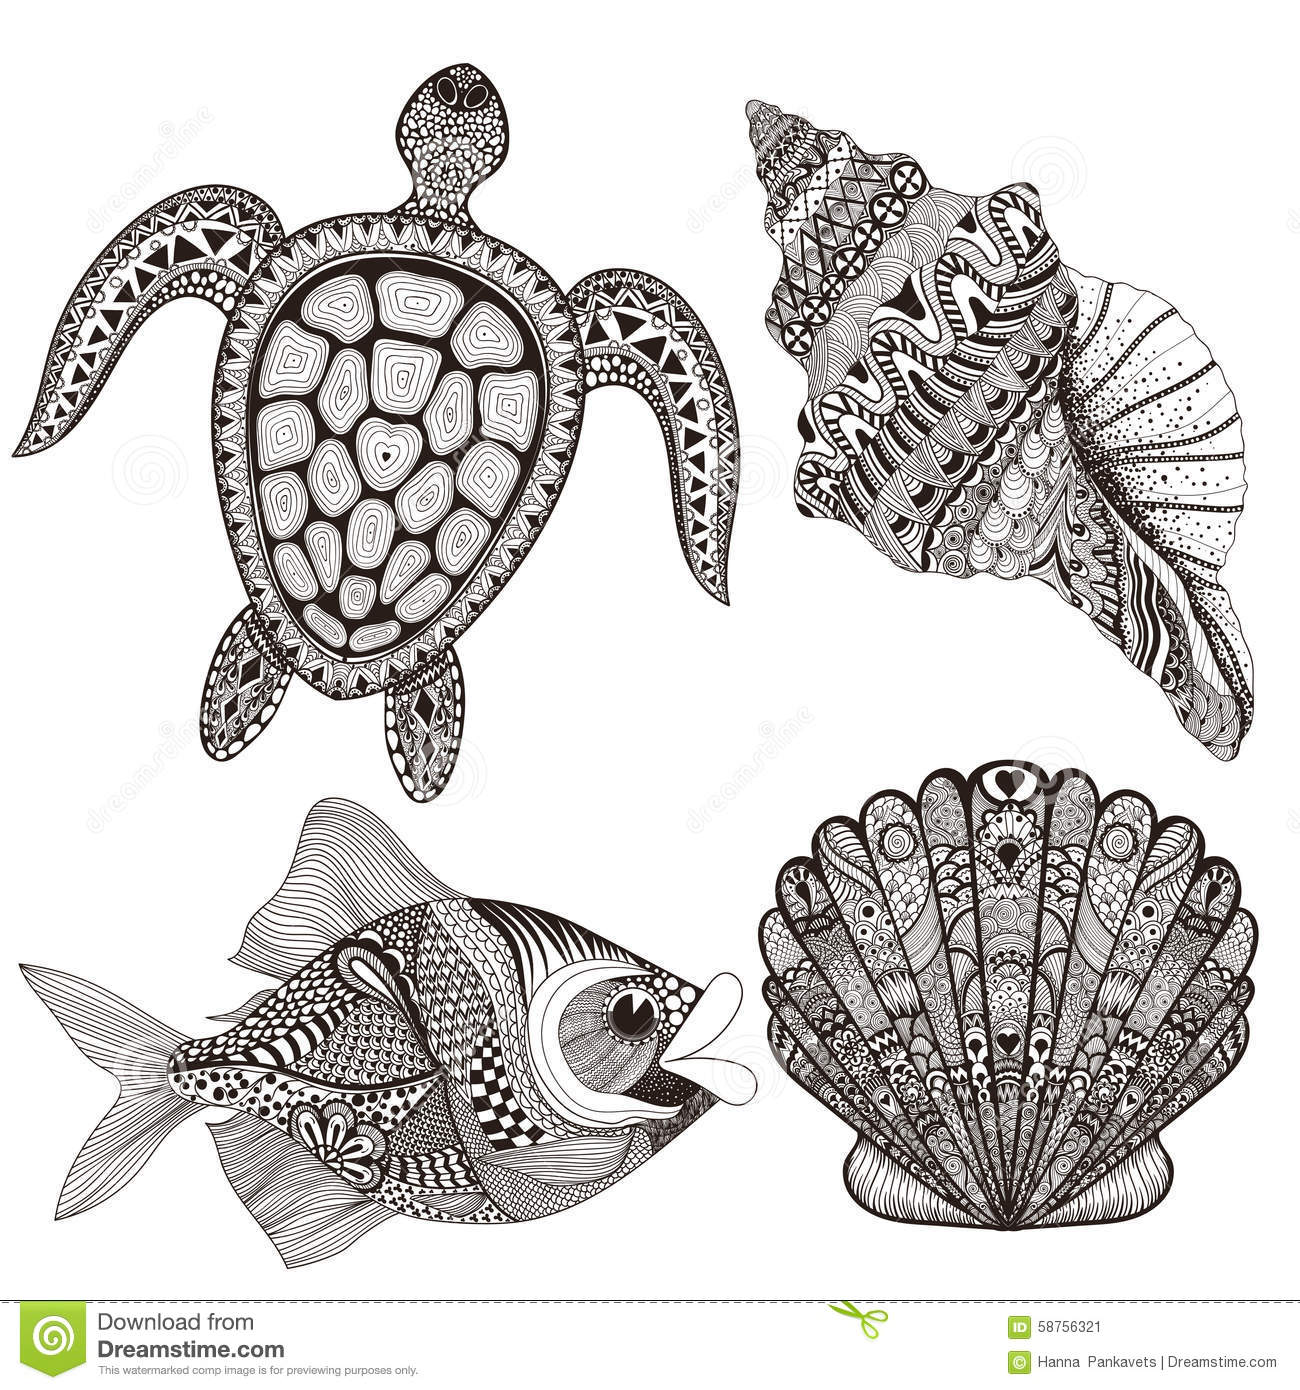 Stag Head Designs Zentangle Stylized Black Sea Shells Fish And Turtle Hand